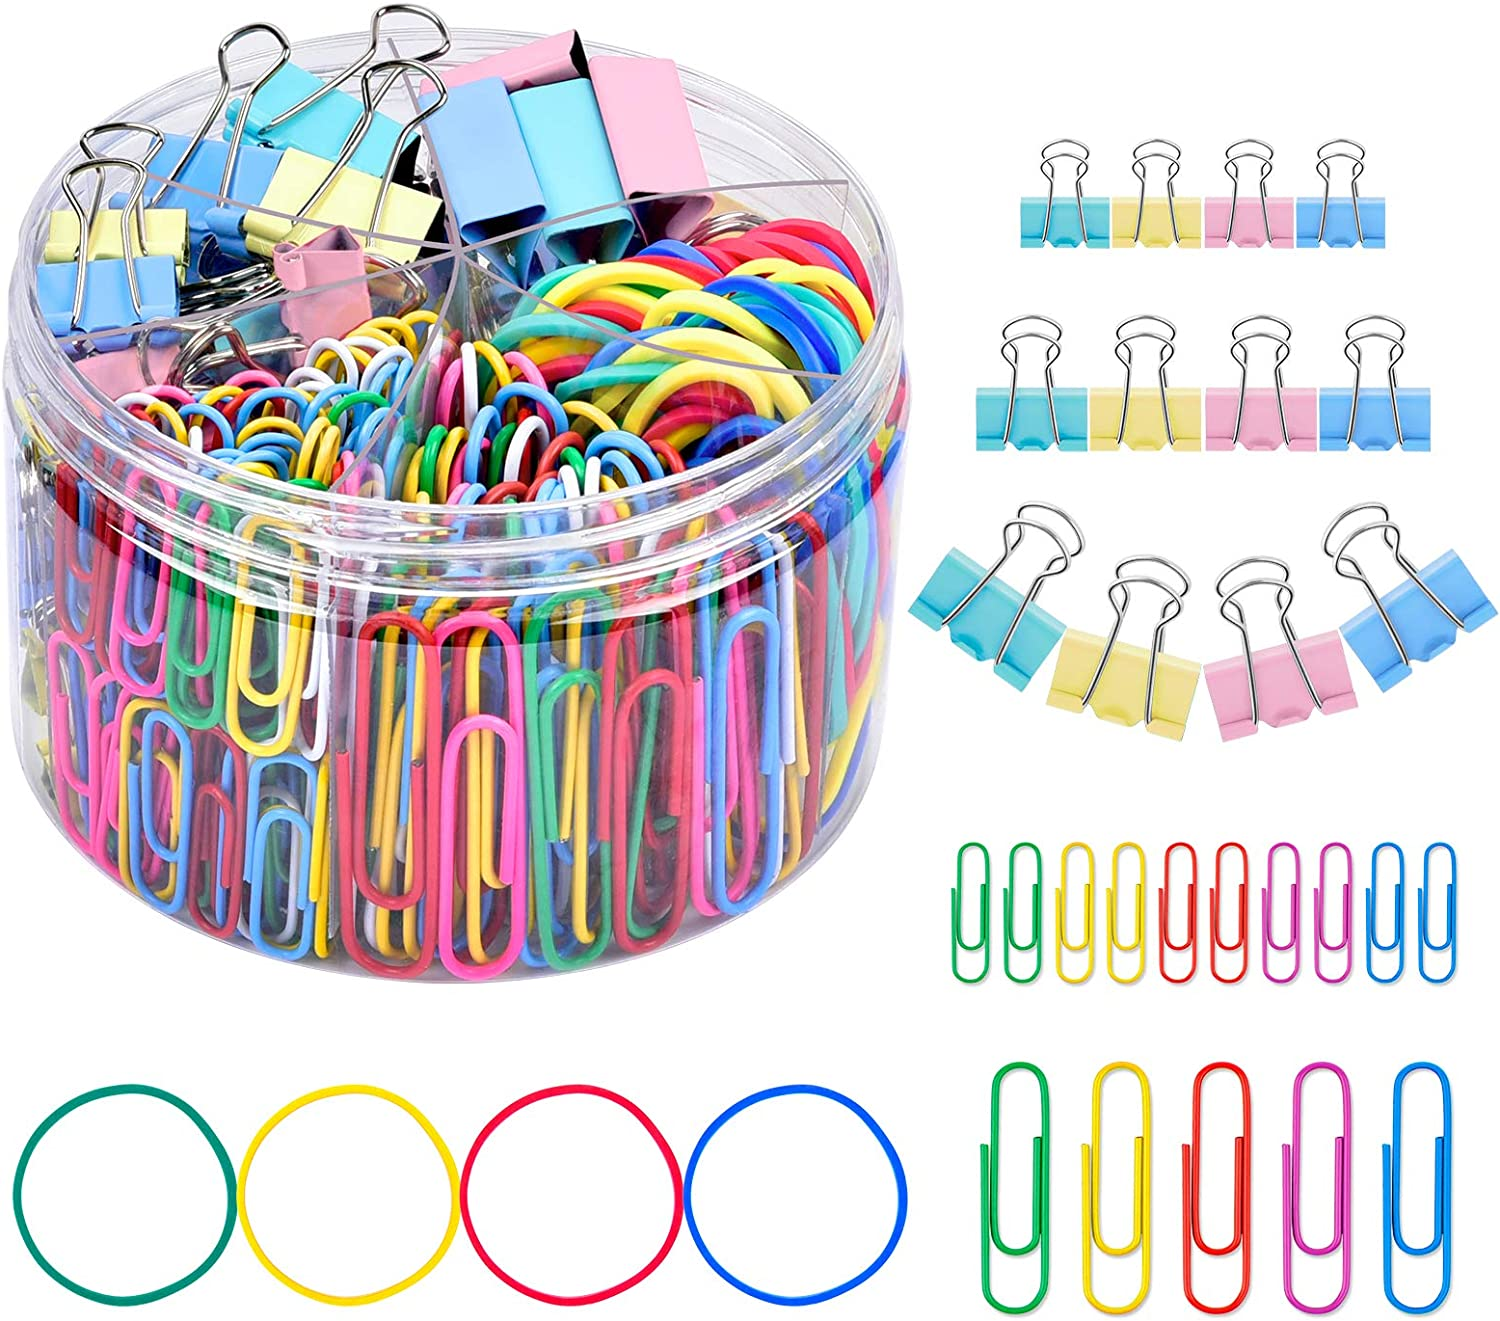 Binder Clips Paper Clips, Sopito 300pcs Colored Office Clips Set with Paper Clamps Paperclips Rubber Bands for Office and School Supplies, Assorted Sizes